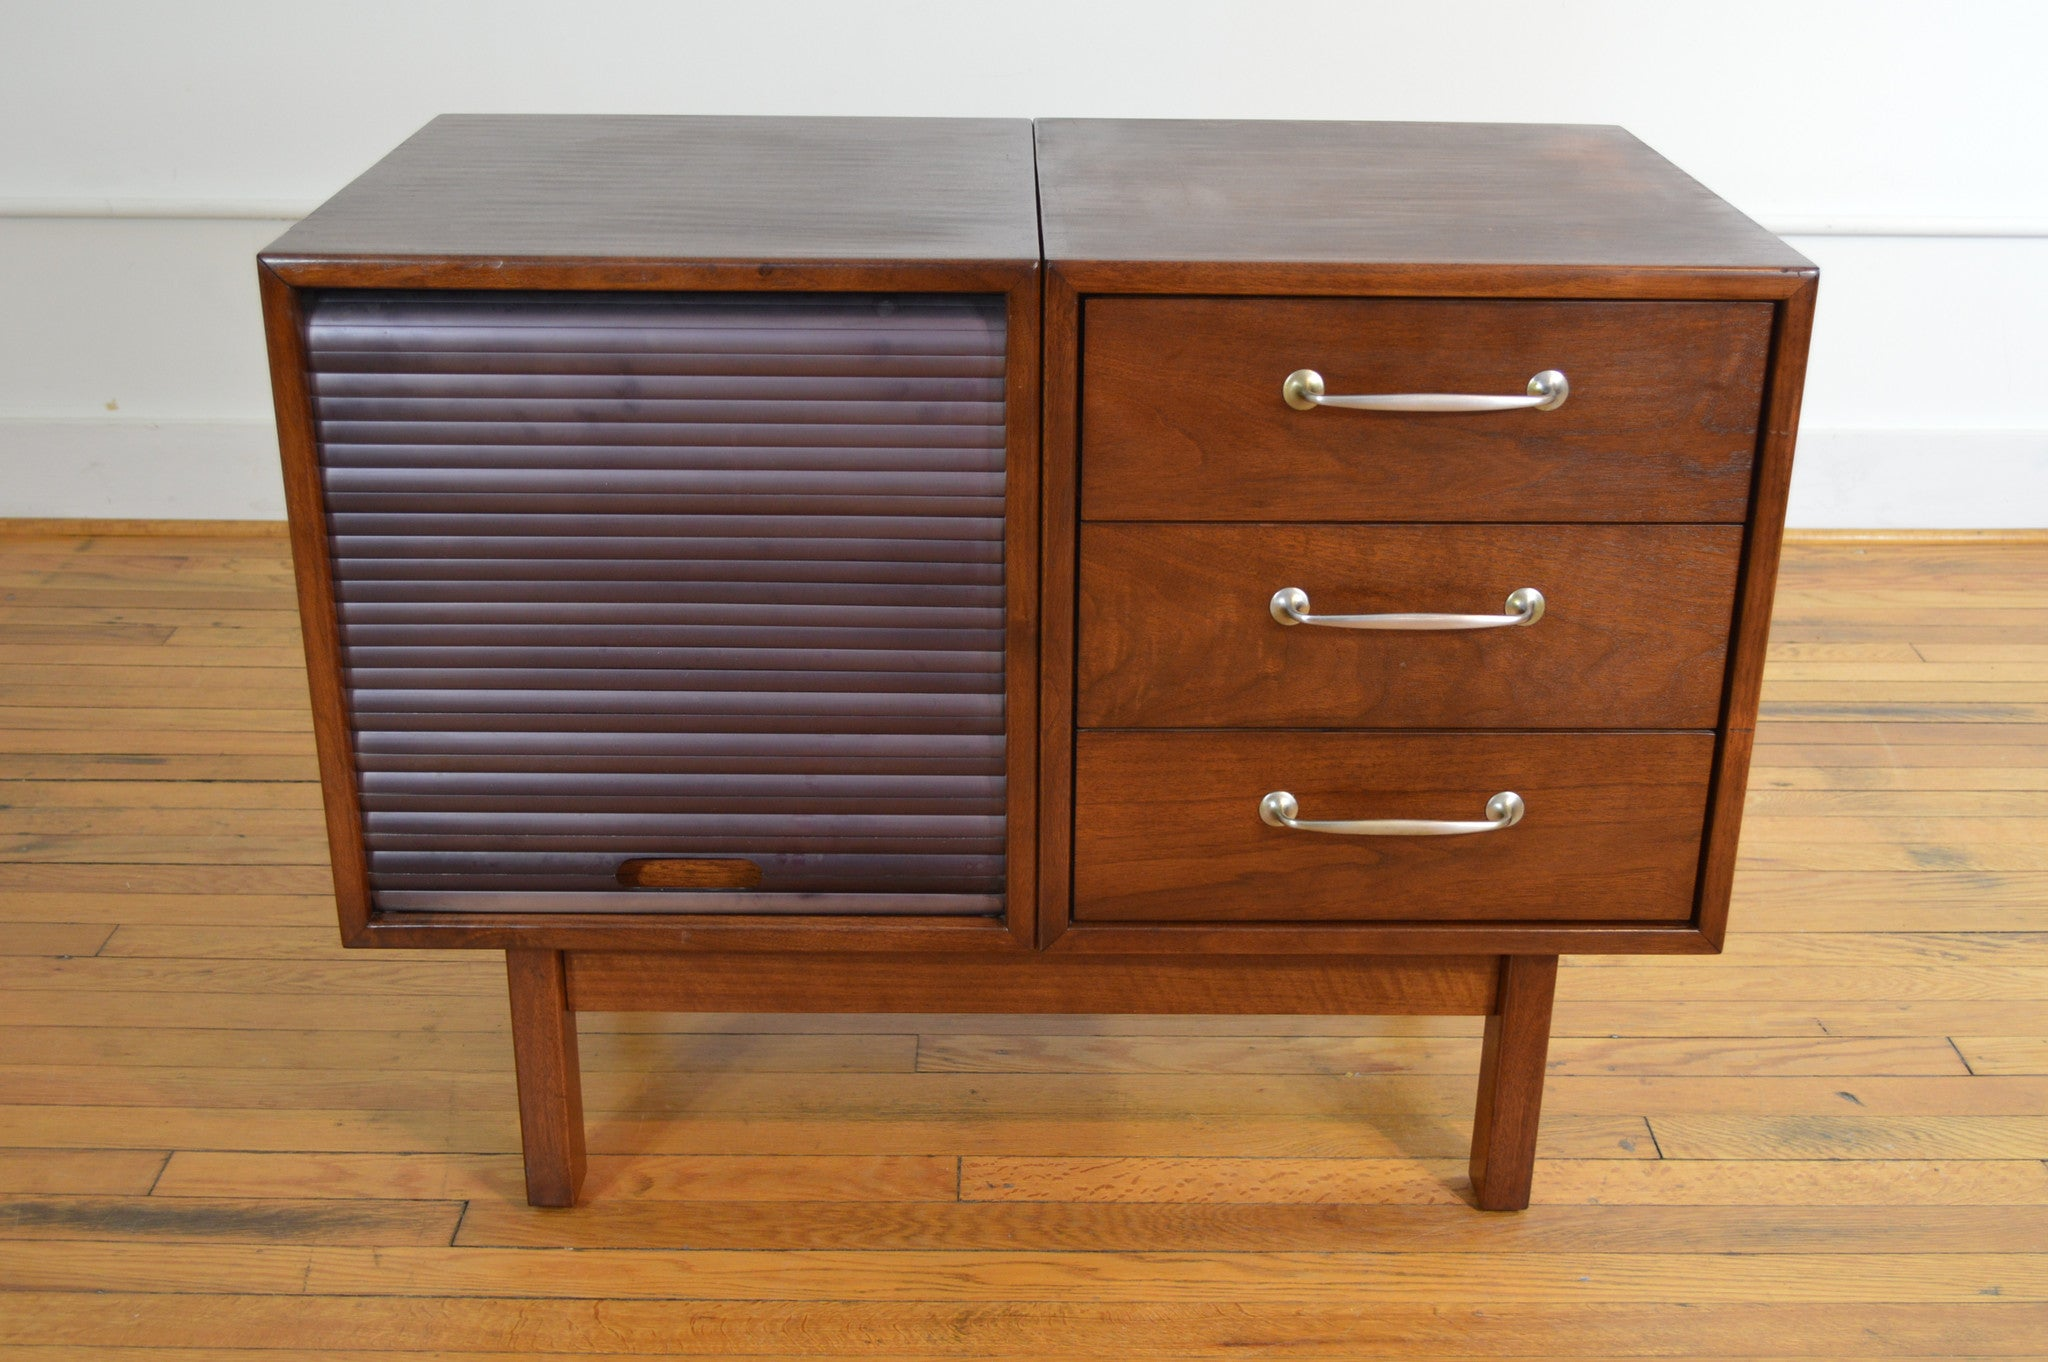 b.l. marble small walnut credenza with pull out shelf - galaxiemodern